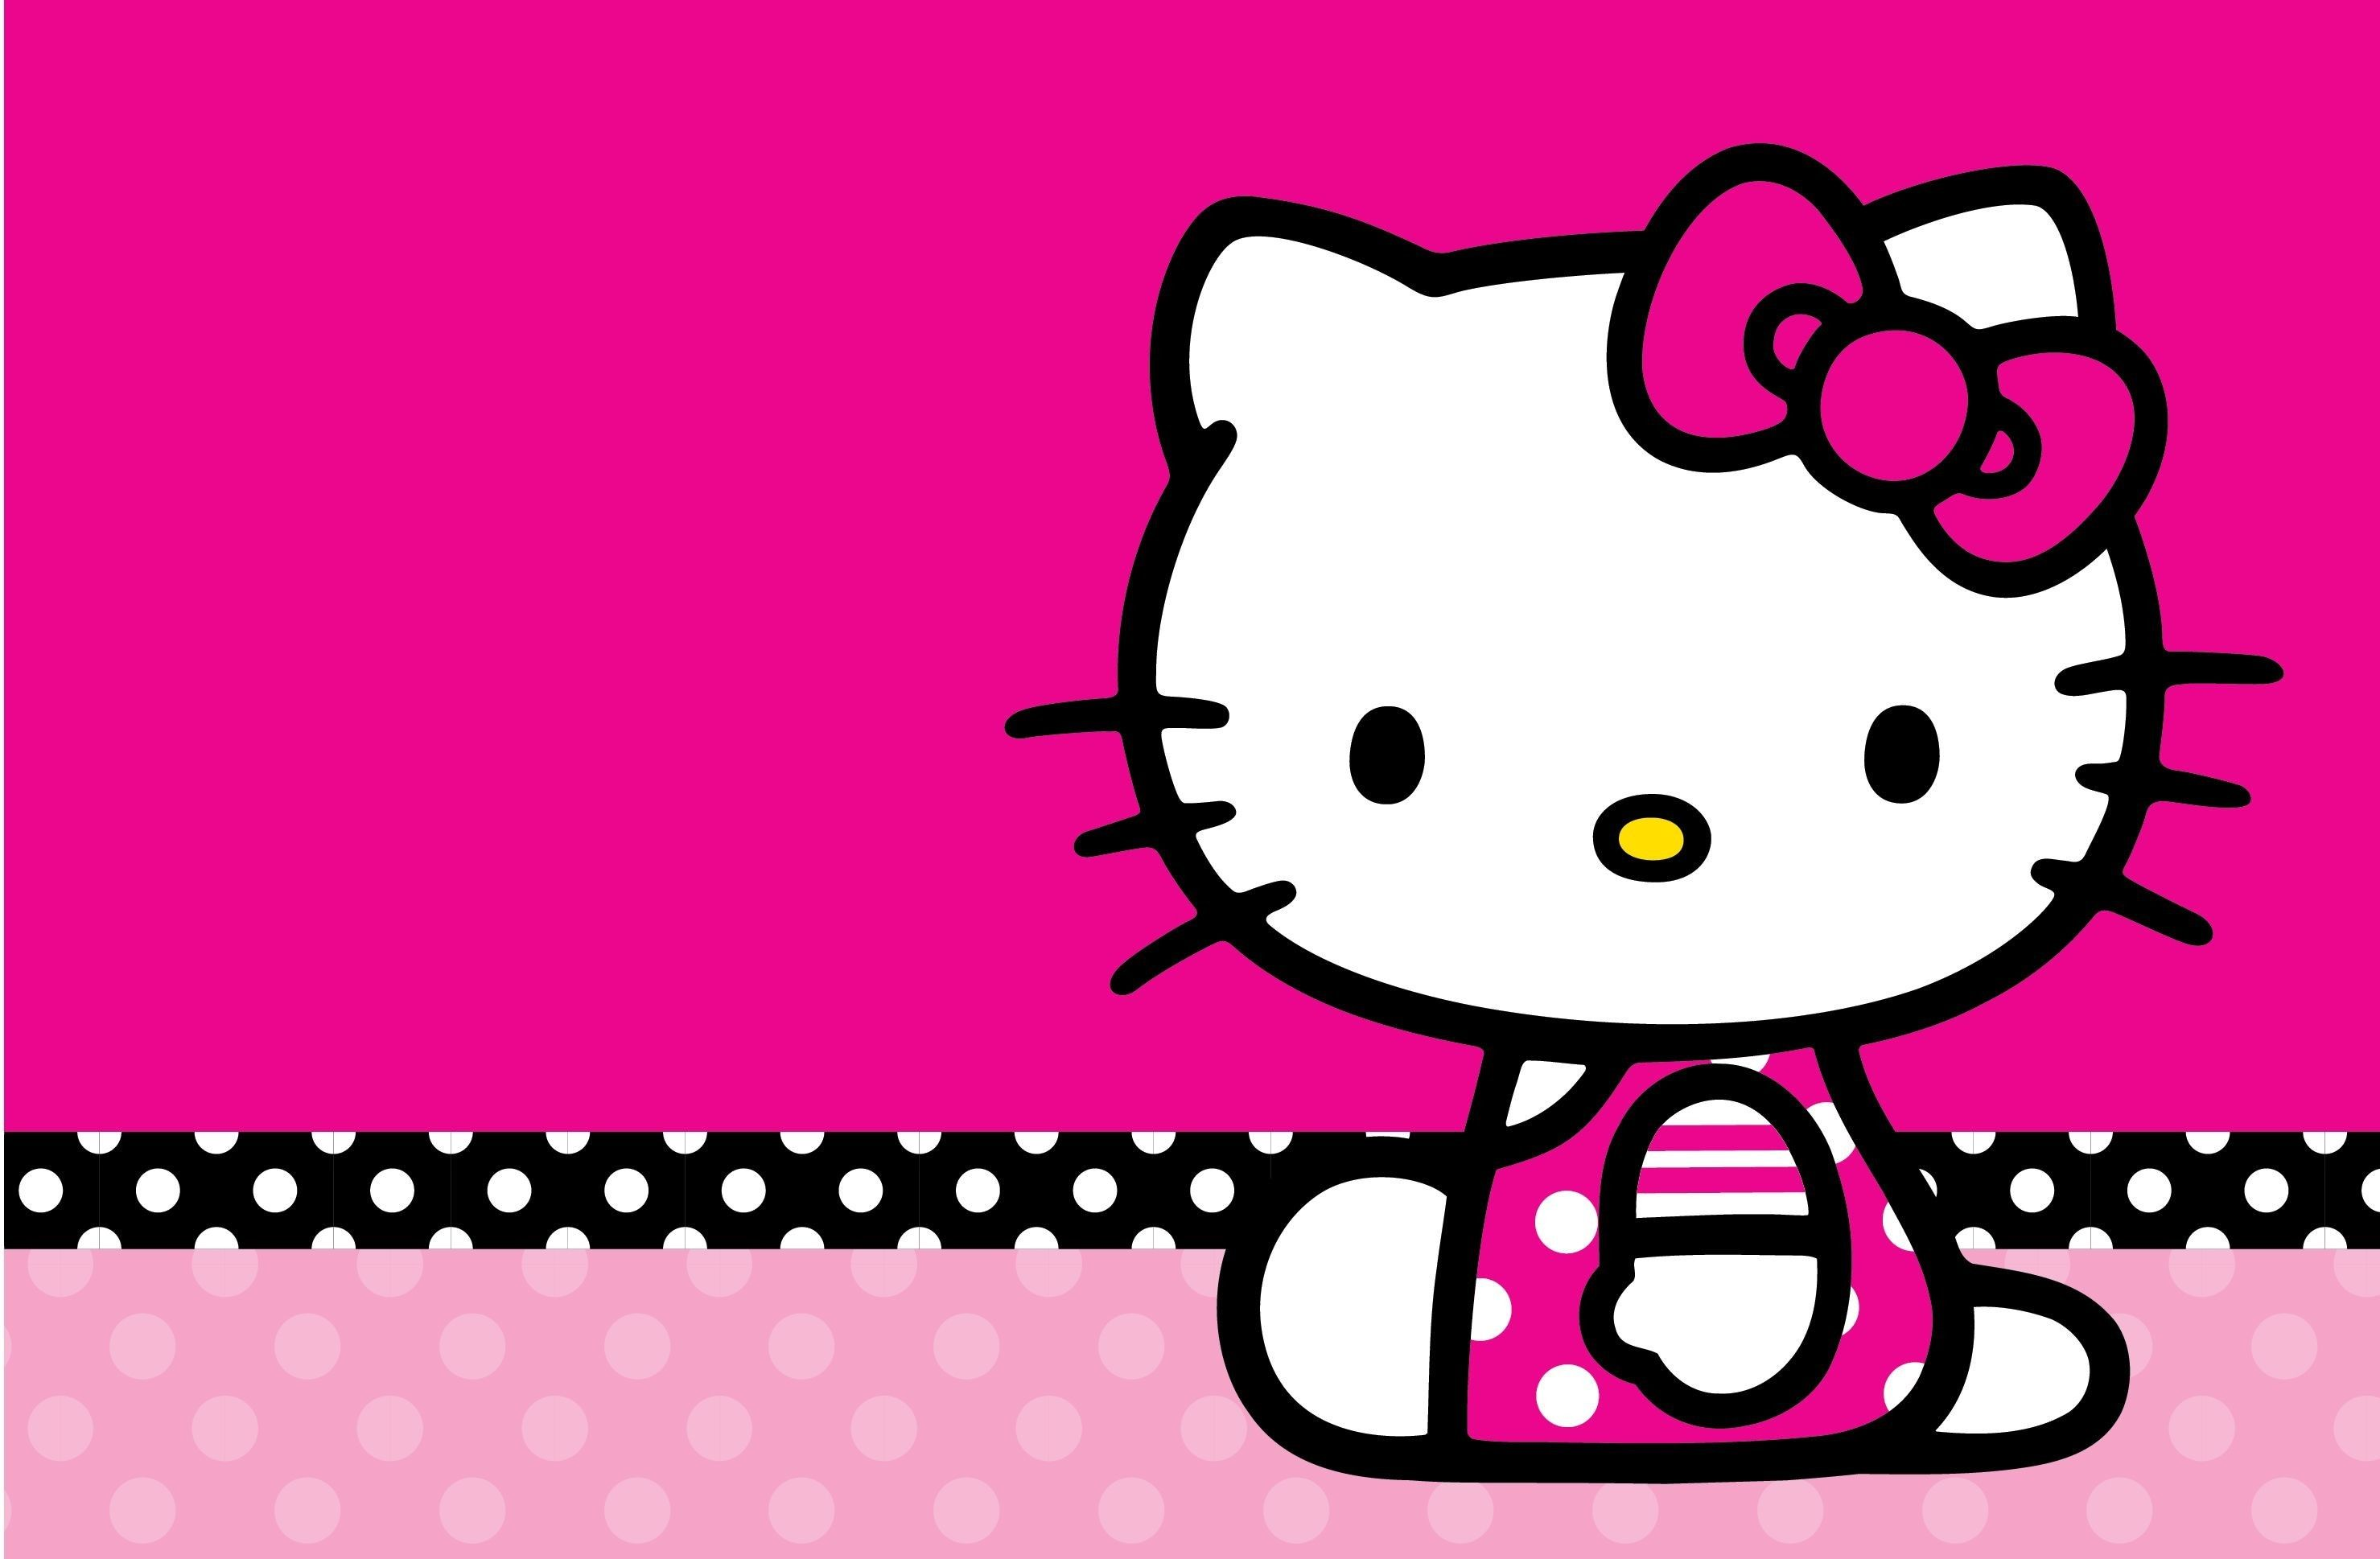 Hello Kitty Pink And Black Love Wallpaper Desktop Background